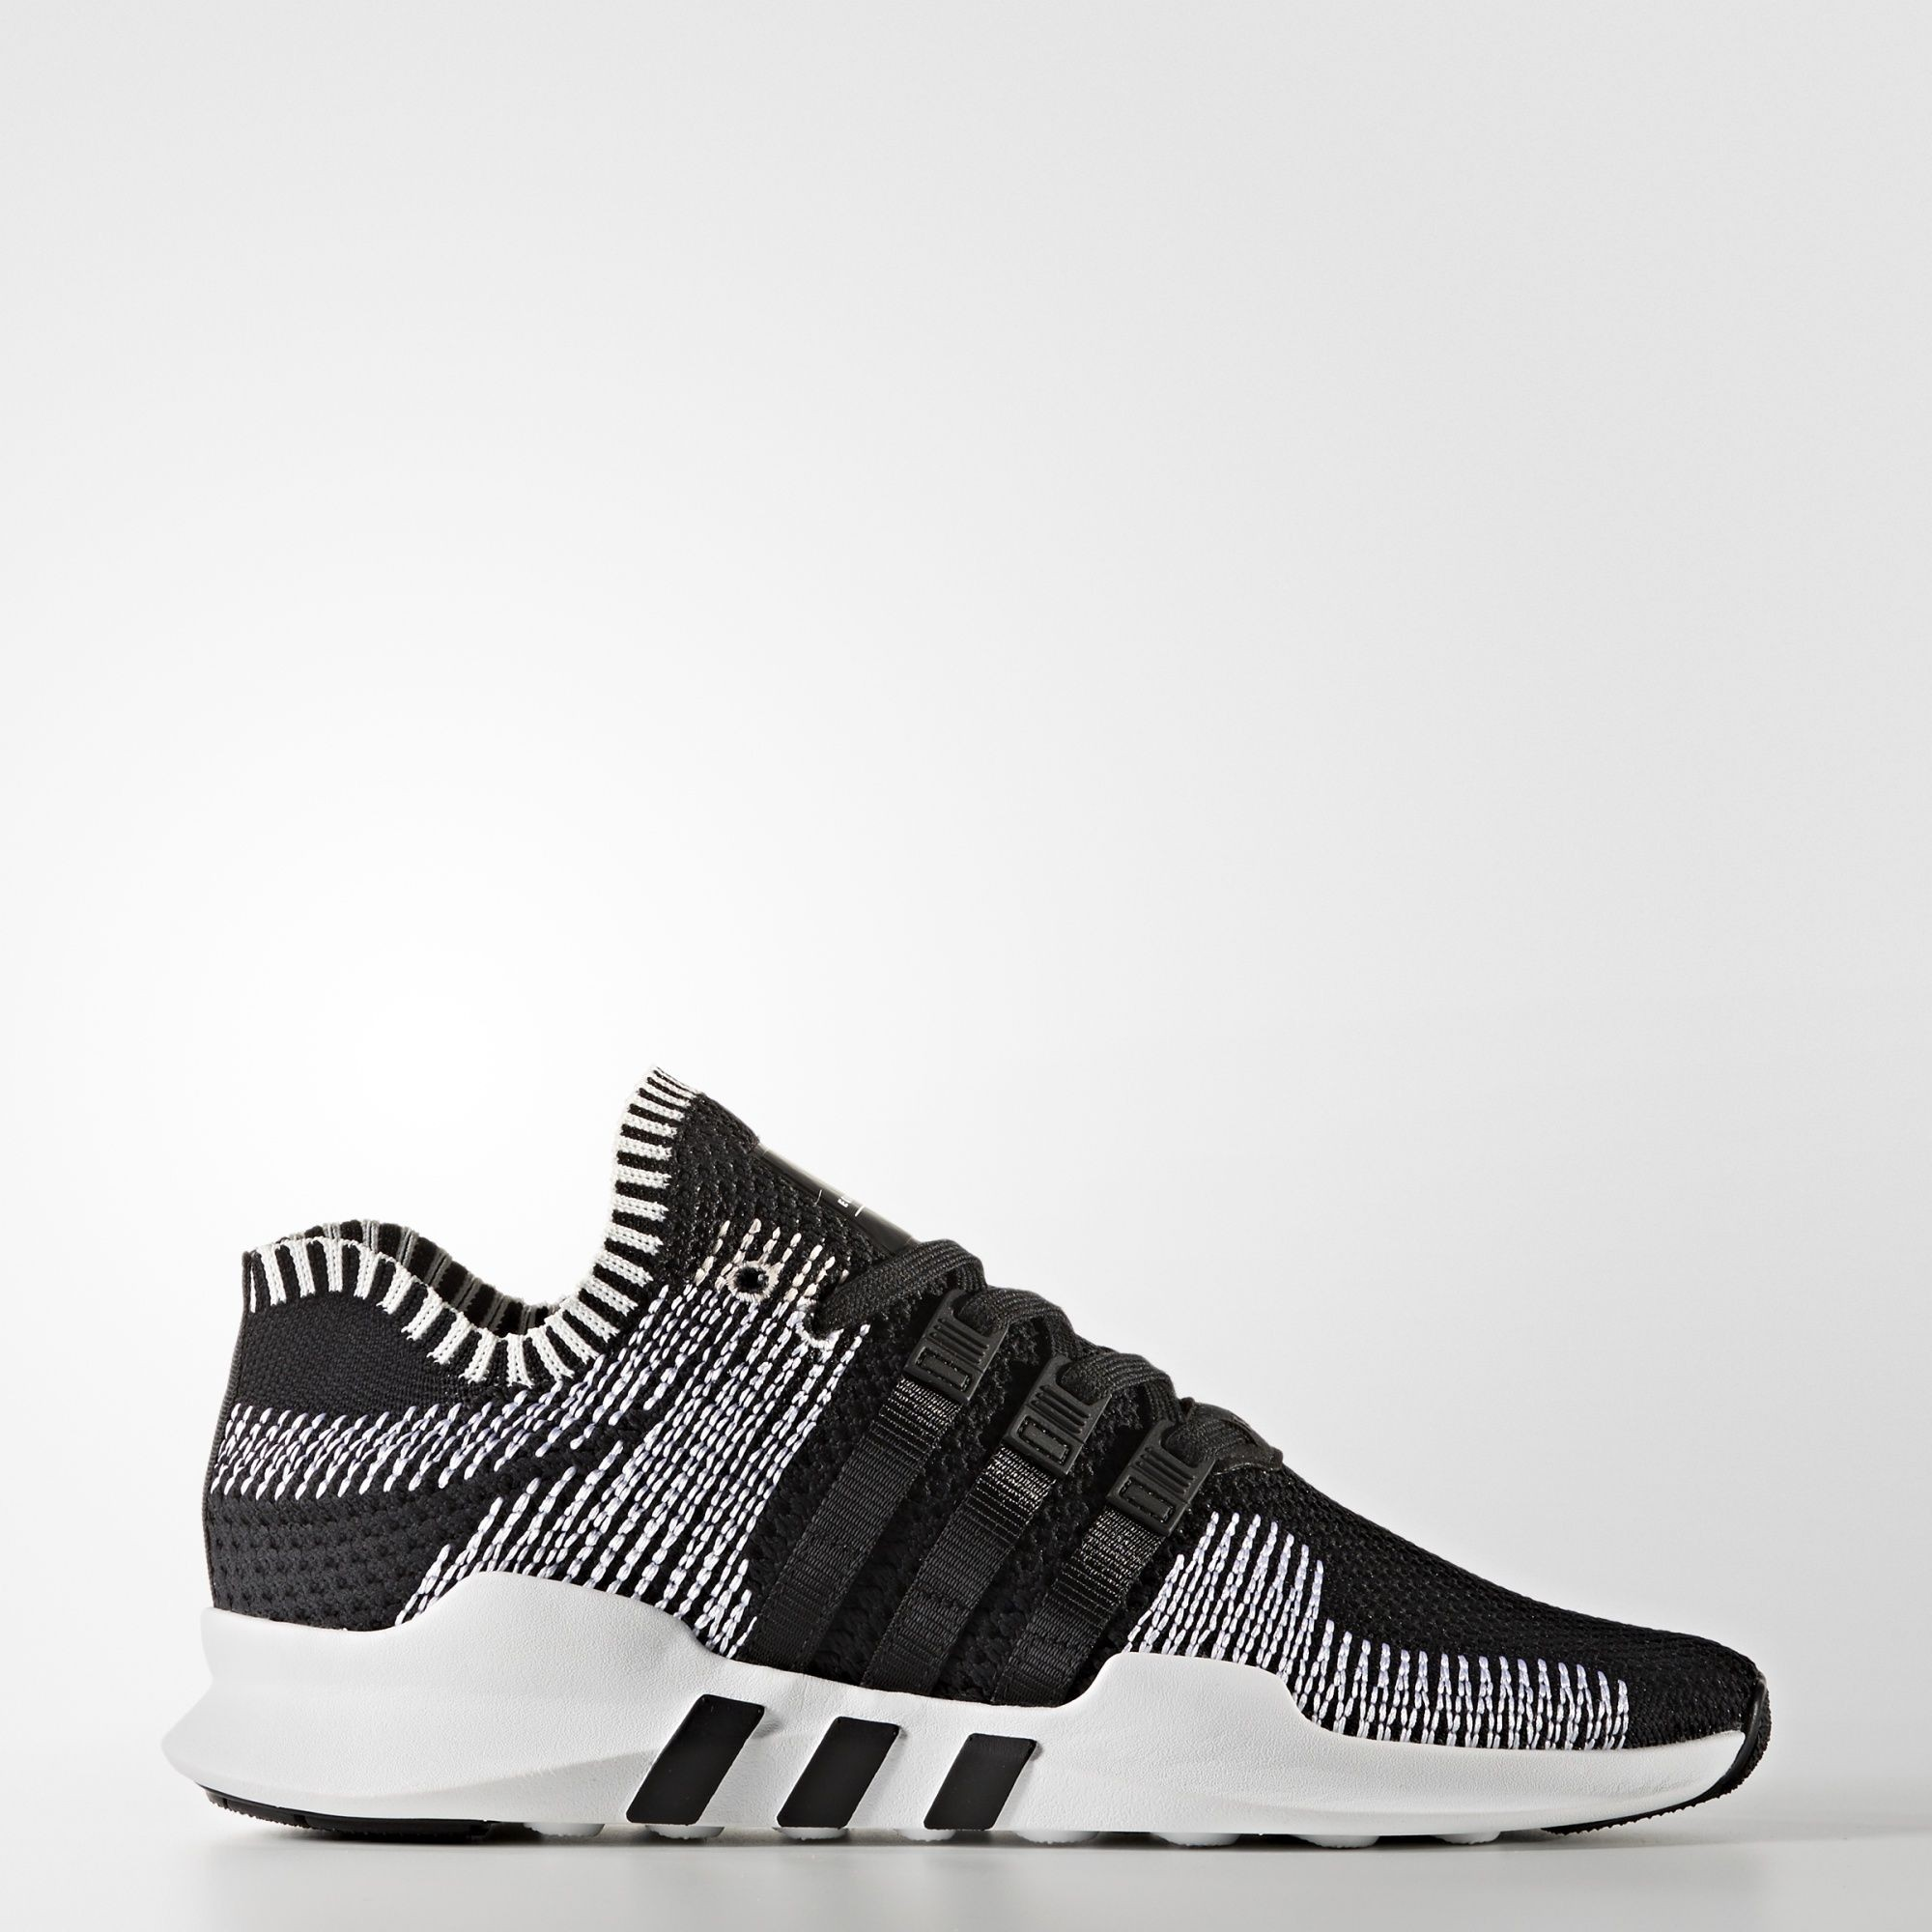 premium selection c2967 98d0e adidas eqt support uomo